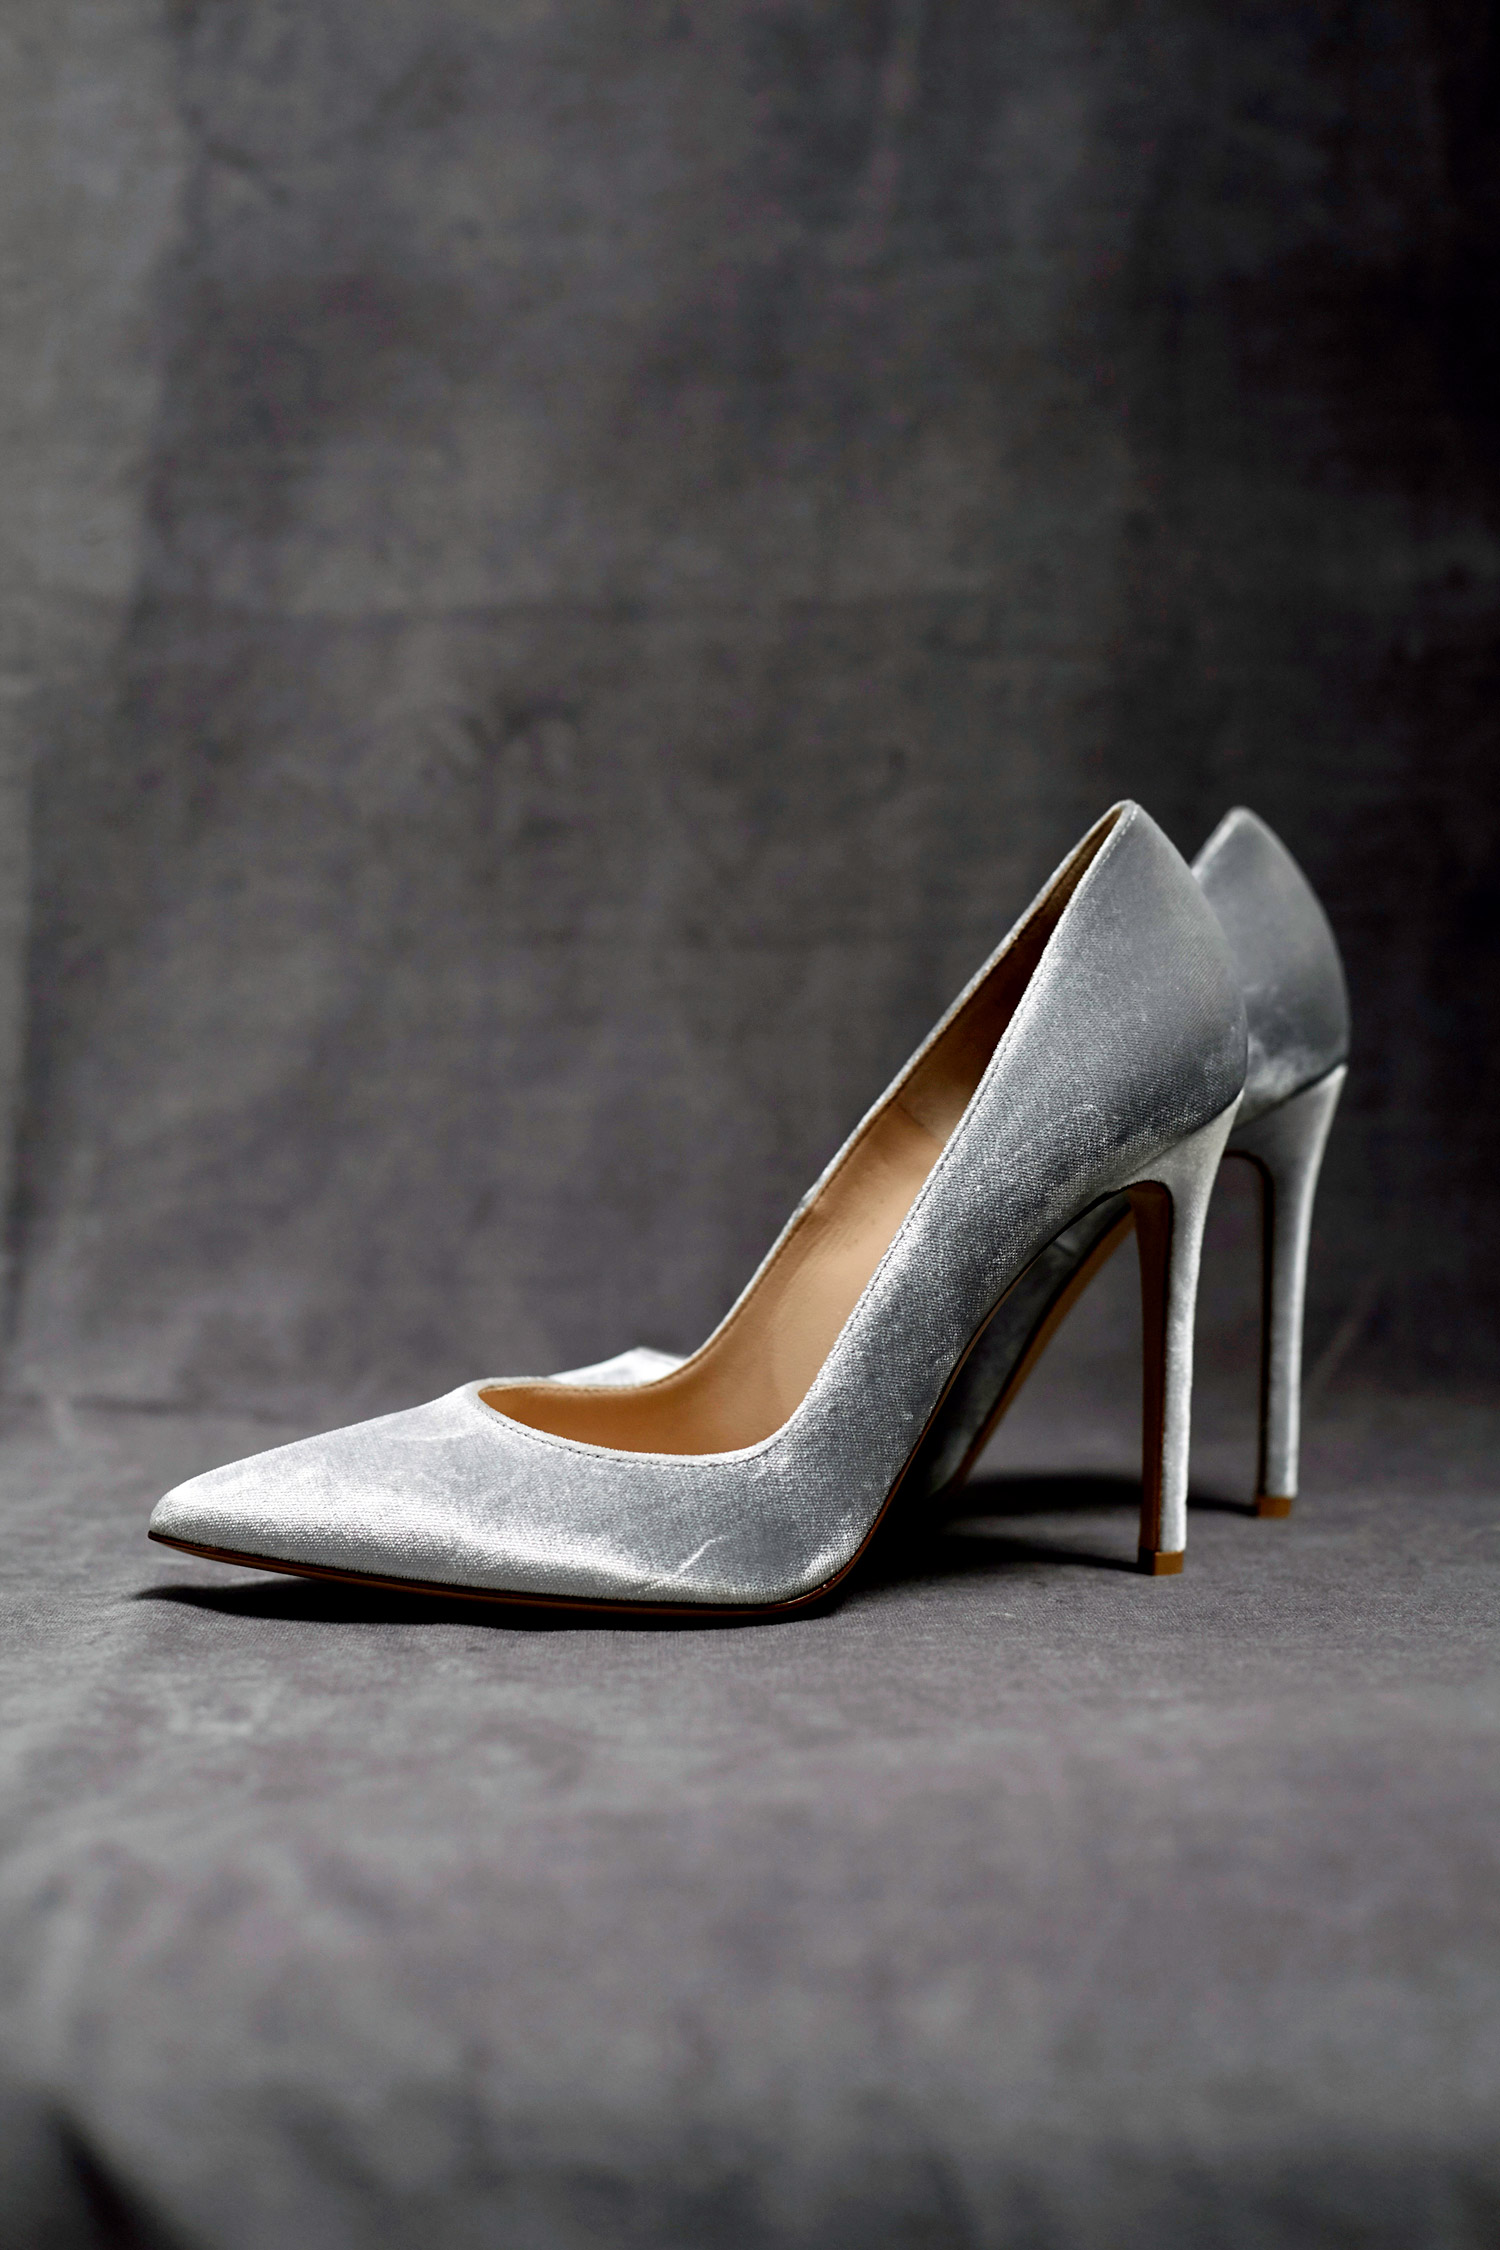 jess todd wedding shoes